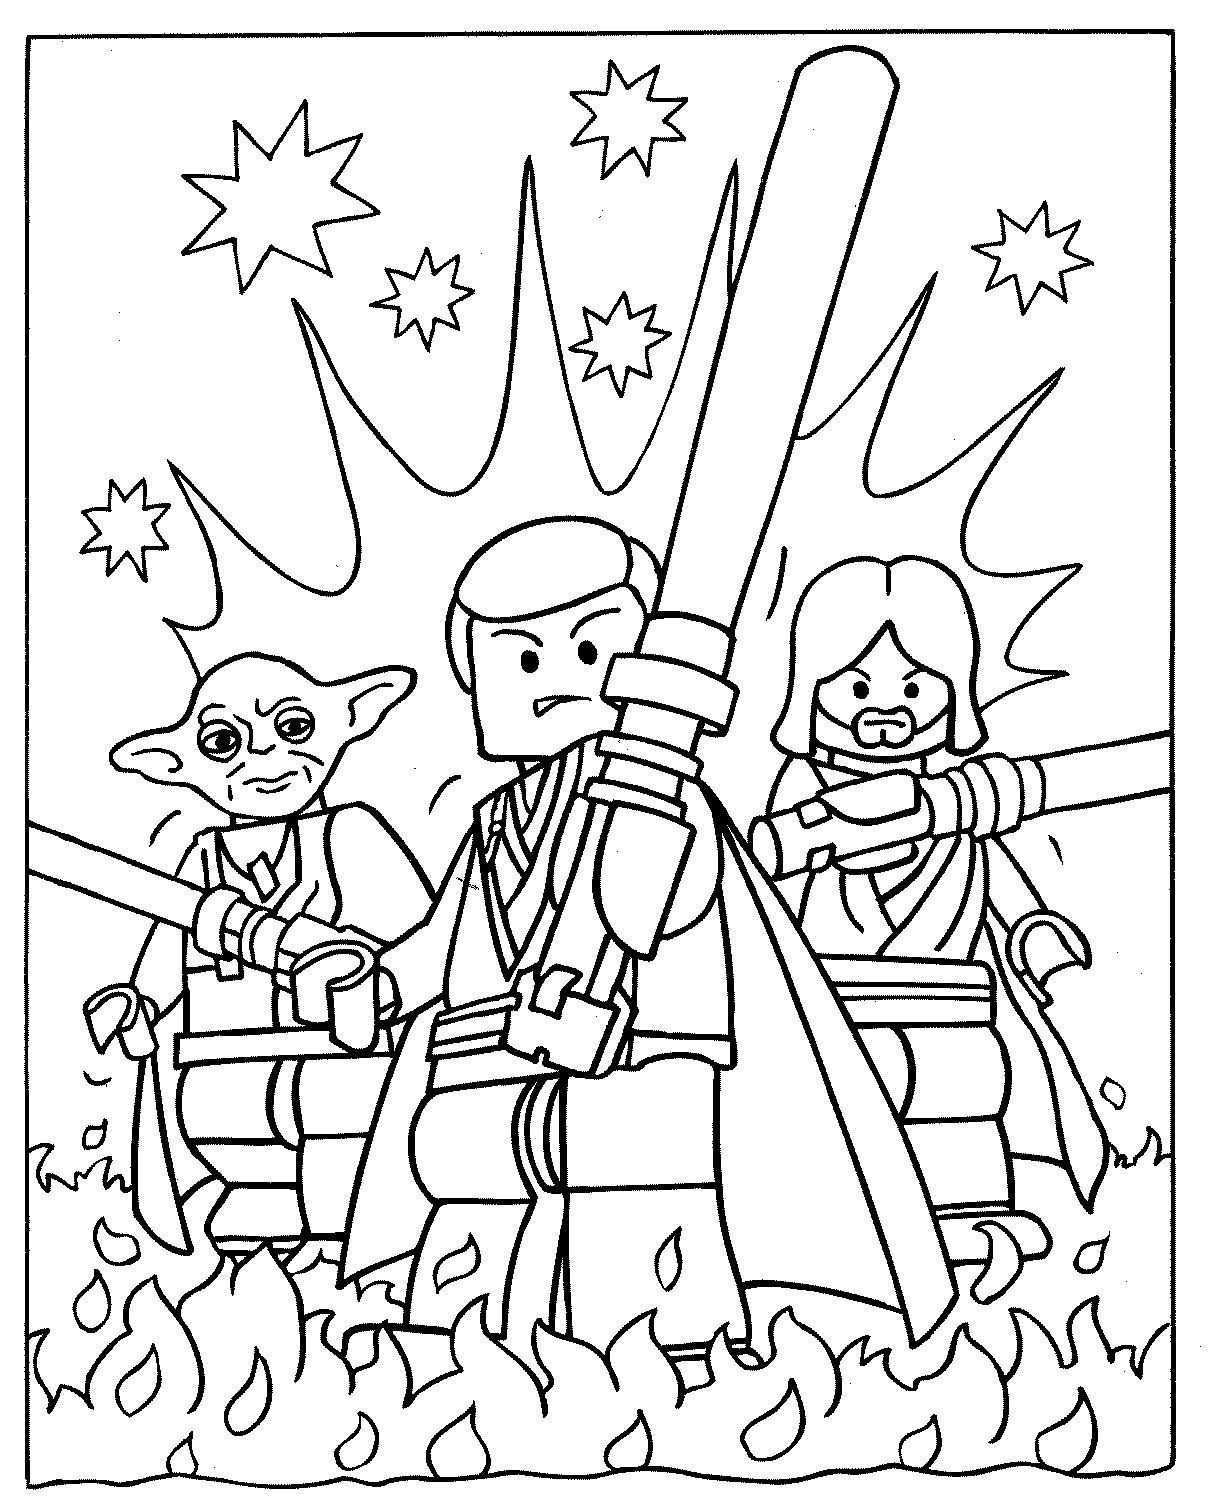 26 Printable Star Wars Coloring Pages Download Coloring Sheets